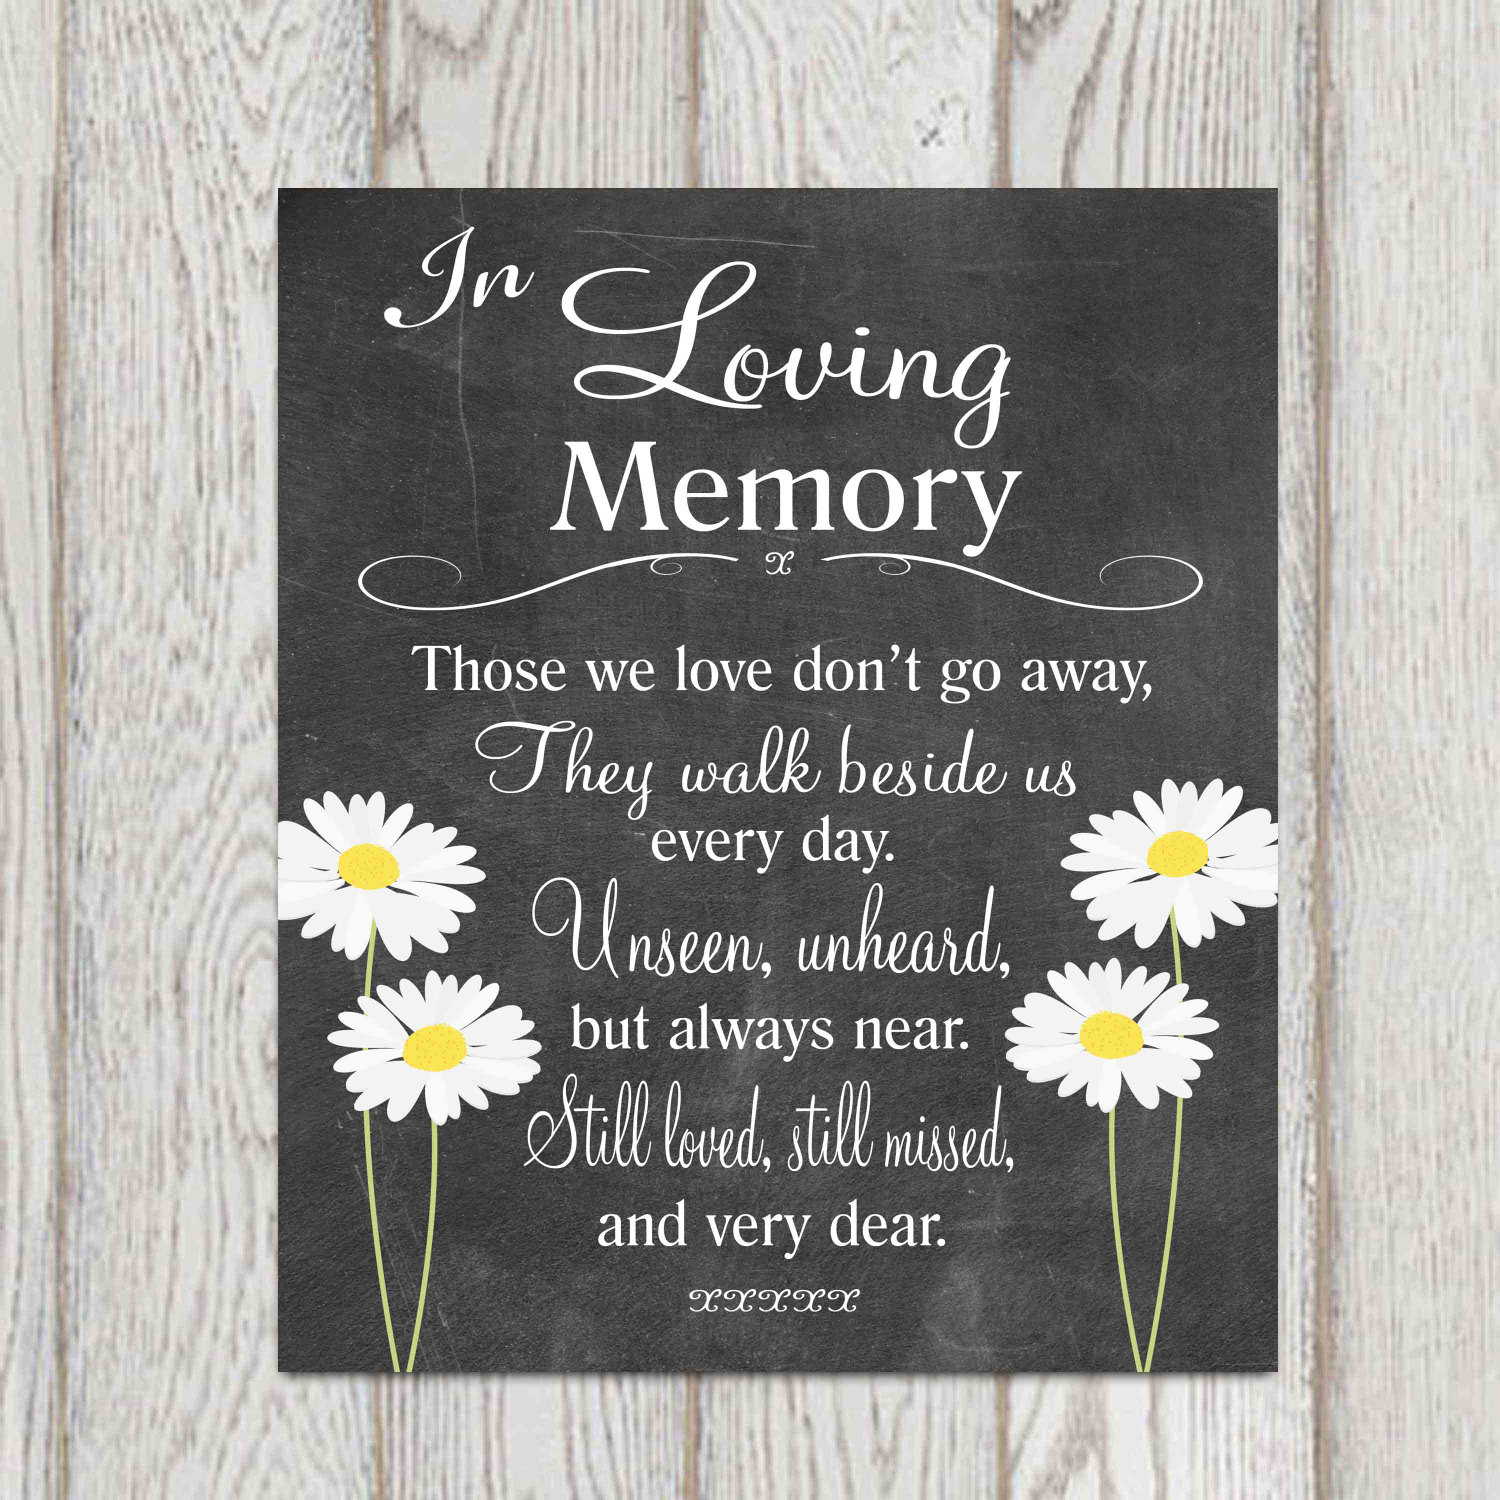 In Loving Memory Quotes Memorial Table In Loving Memory Printable Wedding Memorial